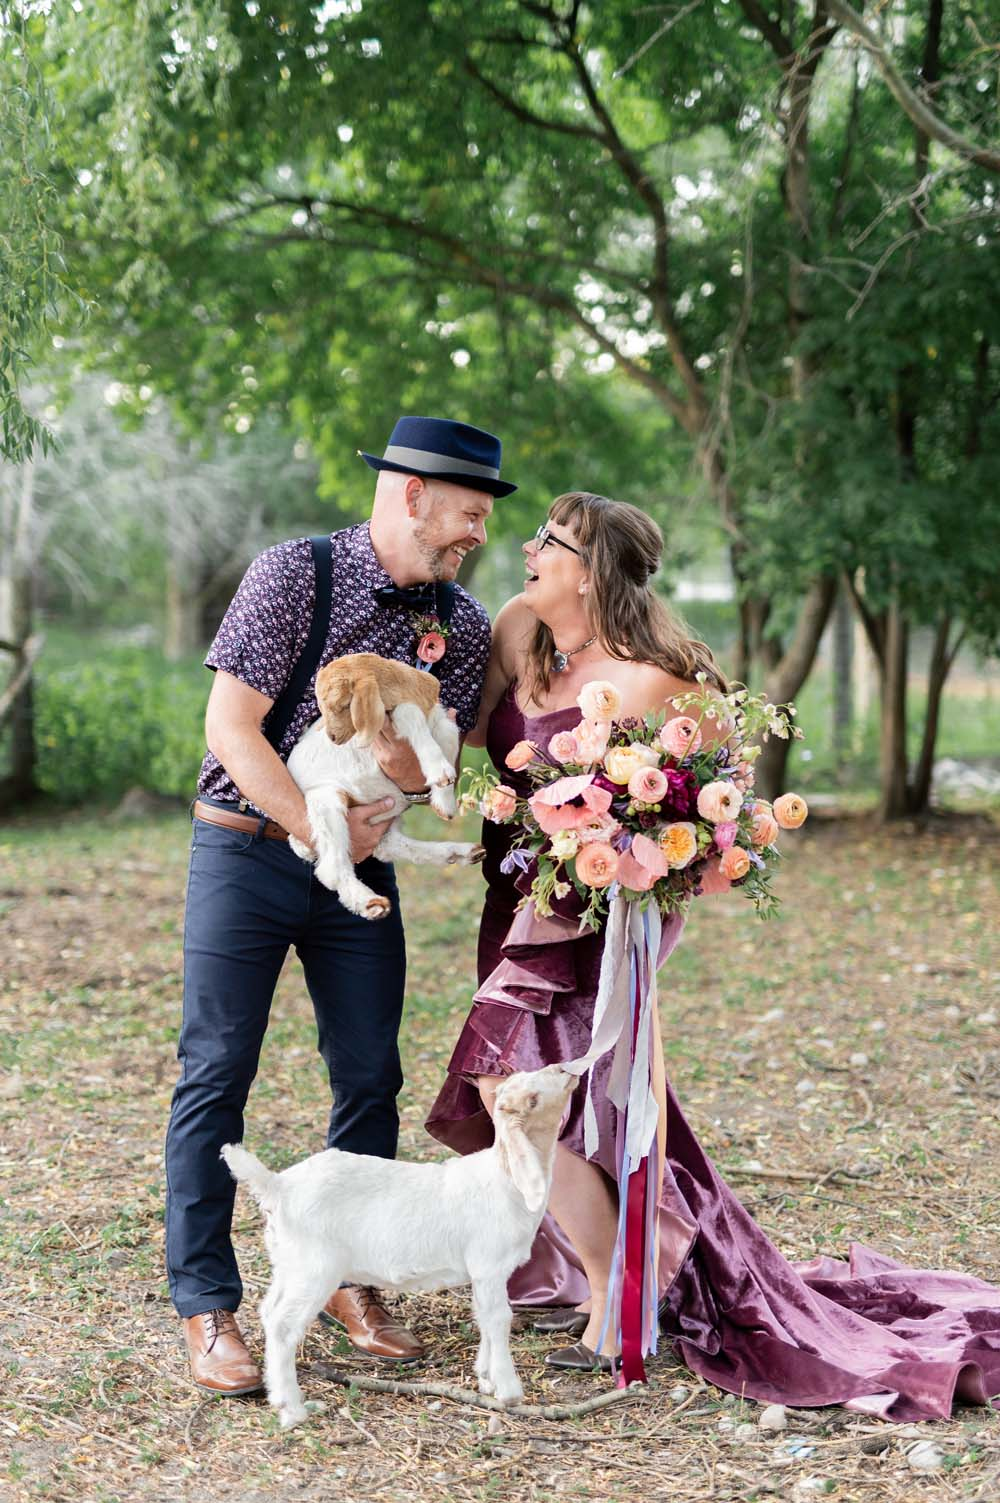 A Quirky Non-Traditional Wedding in Kitchener, Ontario - Couple and goats